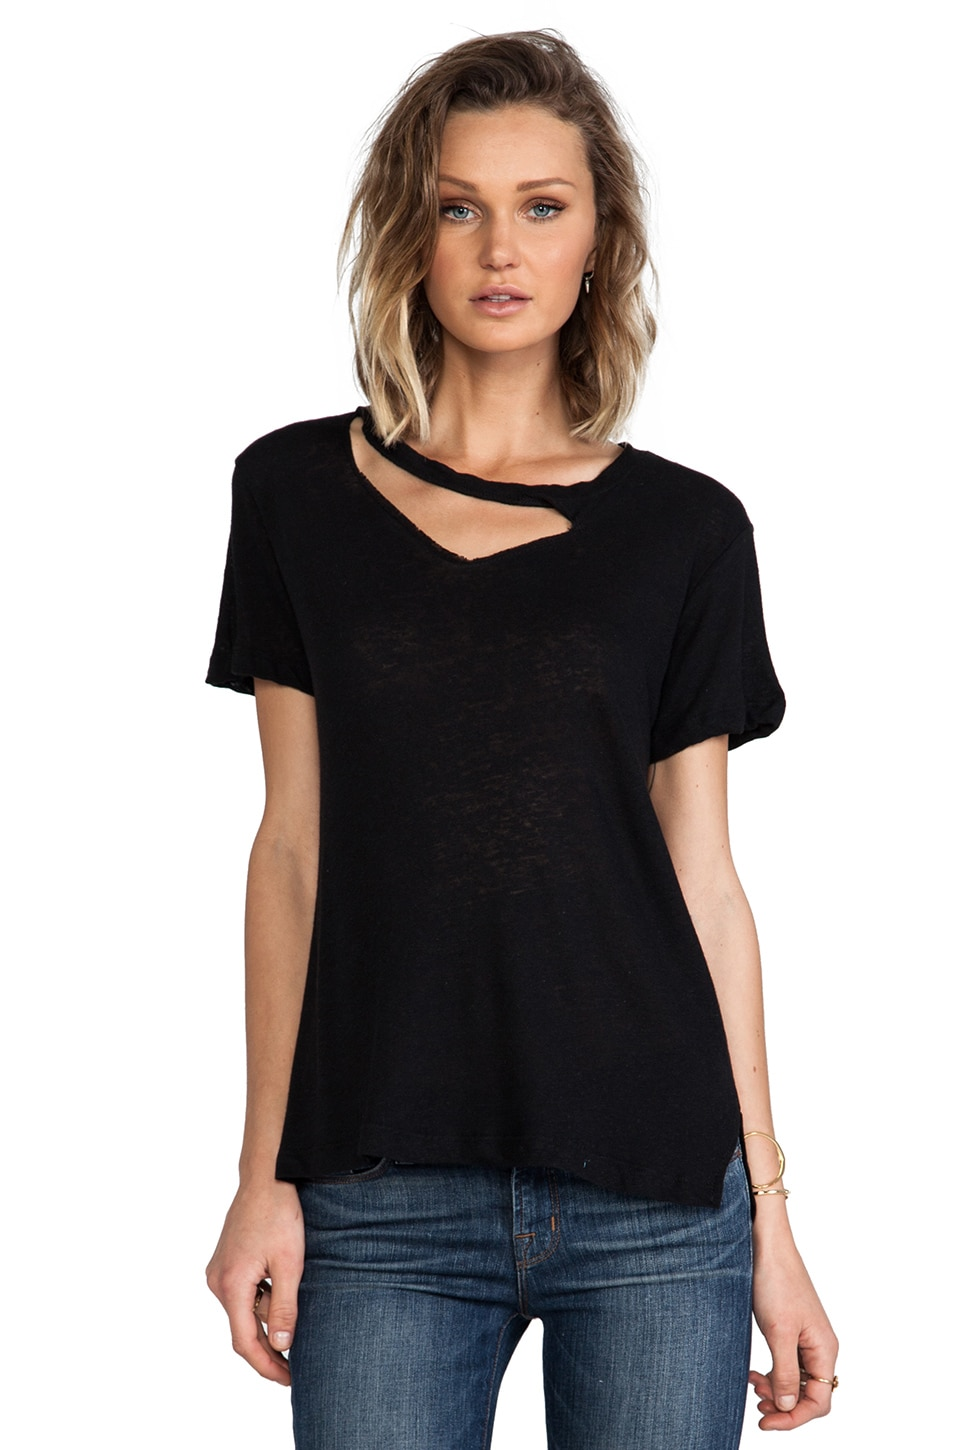 LNA Ixtapa Tee in Black